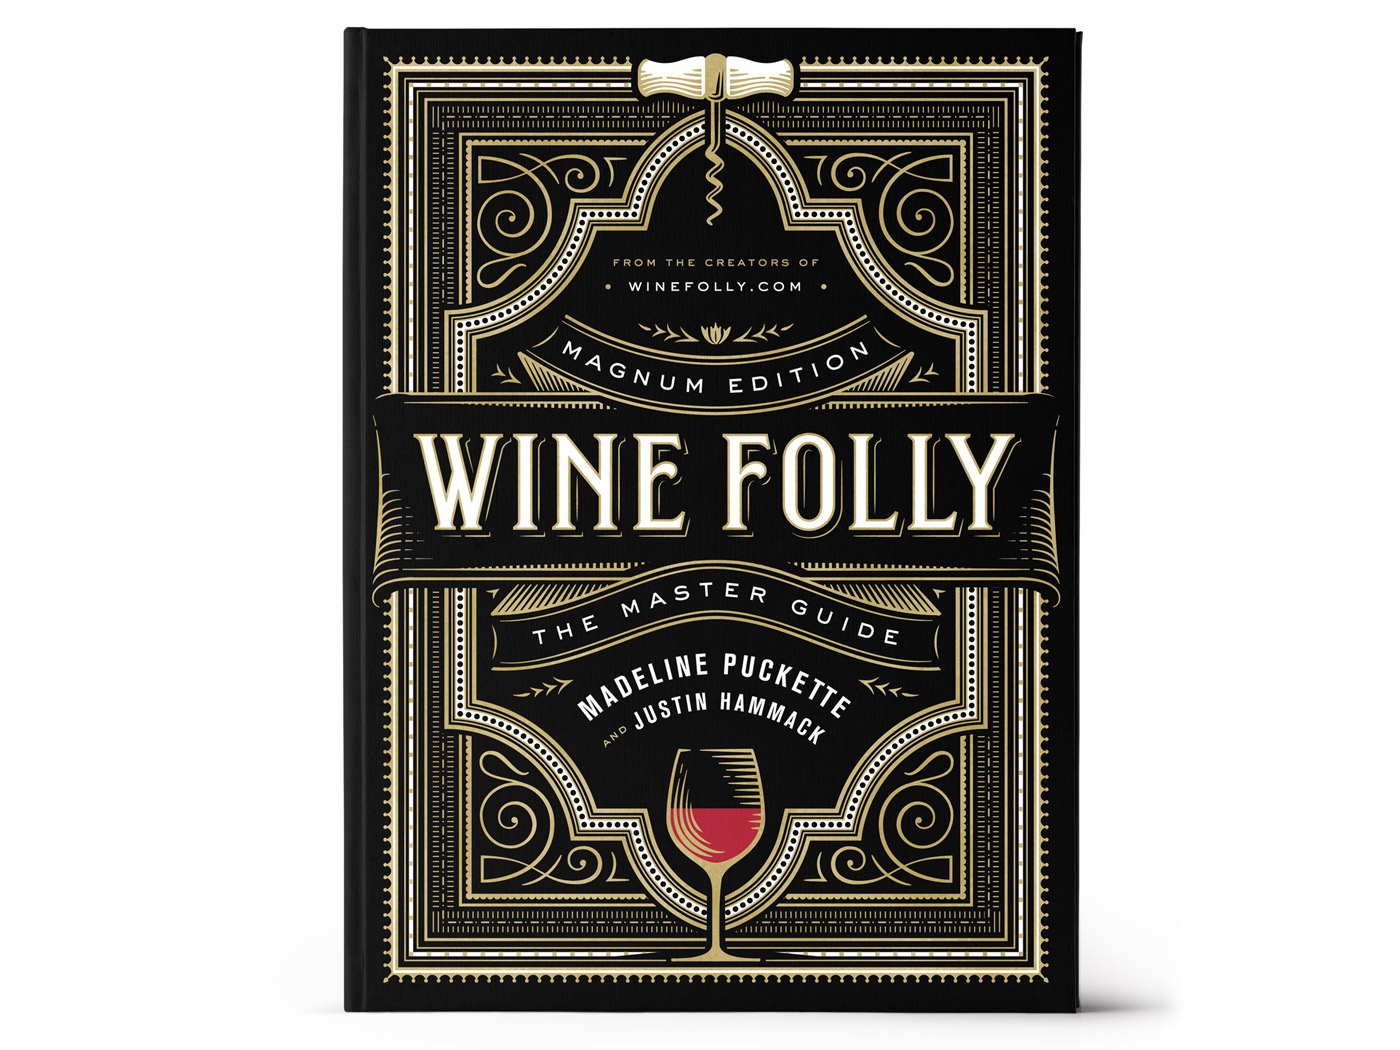 Wine Folly: Magnum Edition The Master Guide